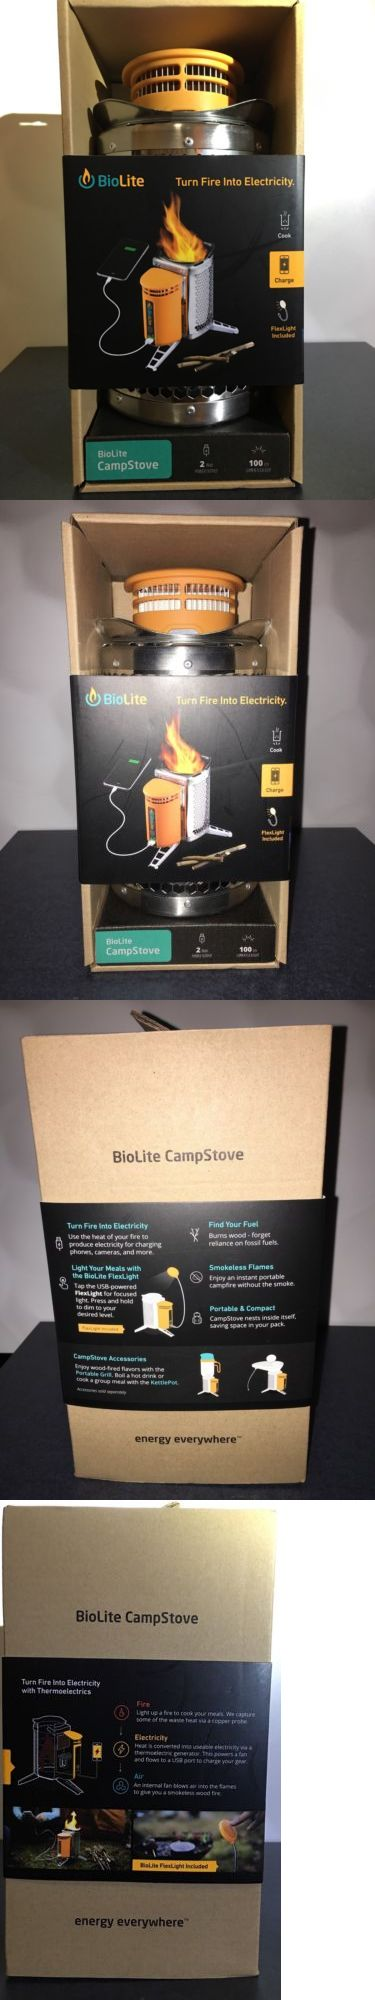 Camping Stoves 181386: Nib Biolite Camp Stove Usb Charger Camping Generator With Flexlight BUY IT NOW ONLY: $109.0